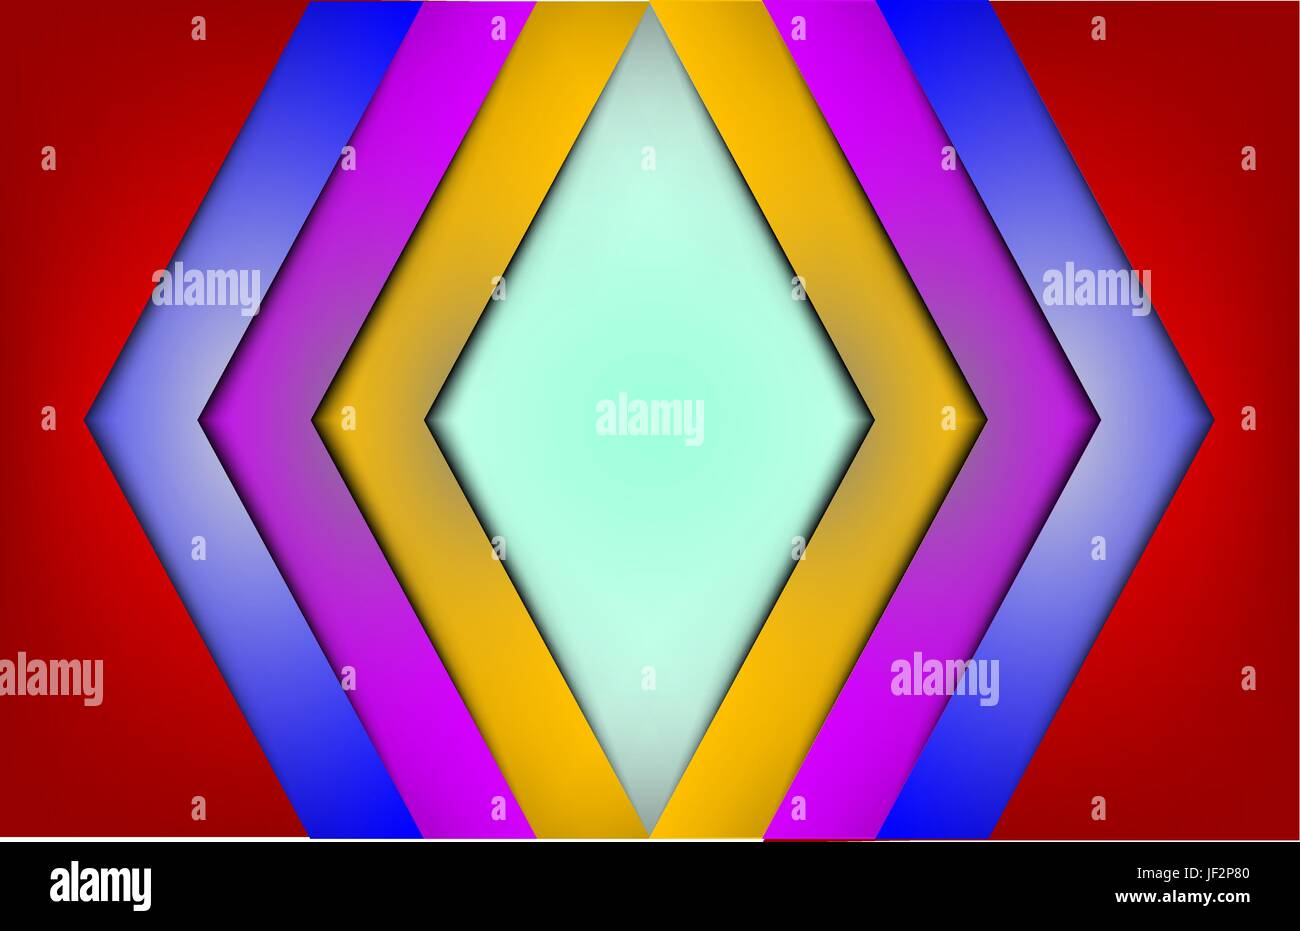 symmetric, abstract, mesh, geometric, backdrop, background, shaddow, shadow, - Stock Vector